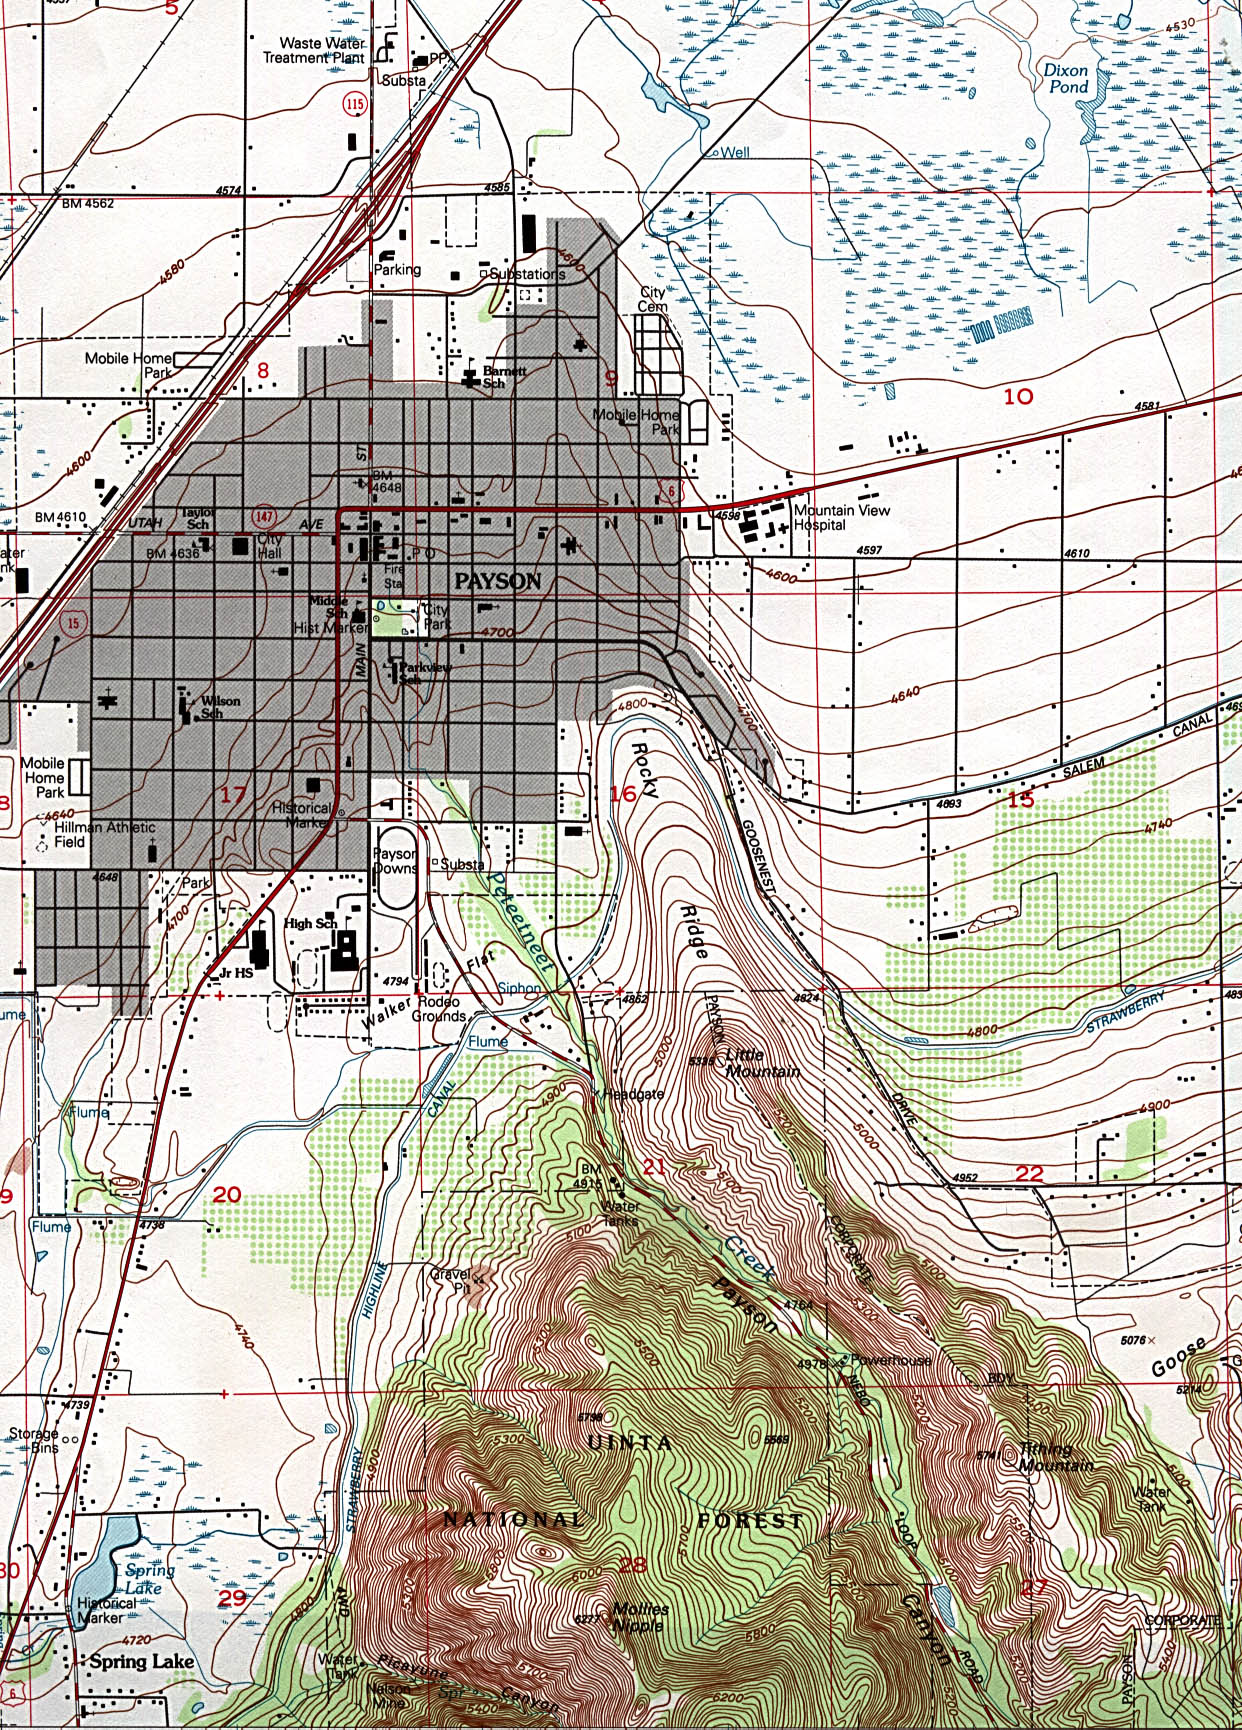 Payson Topographic City Map, Utah, United States